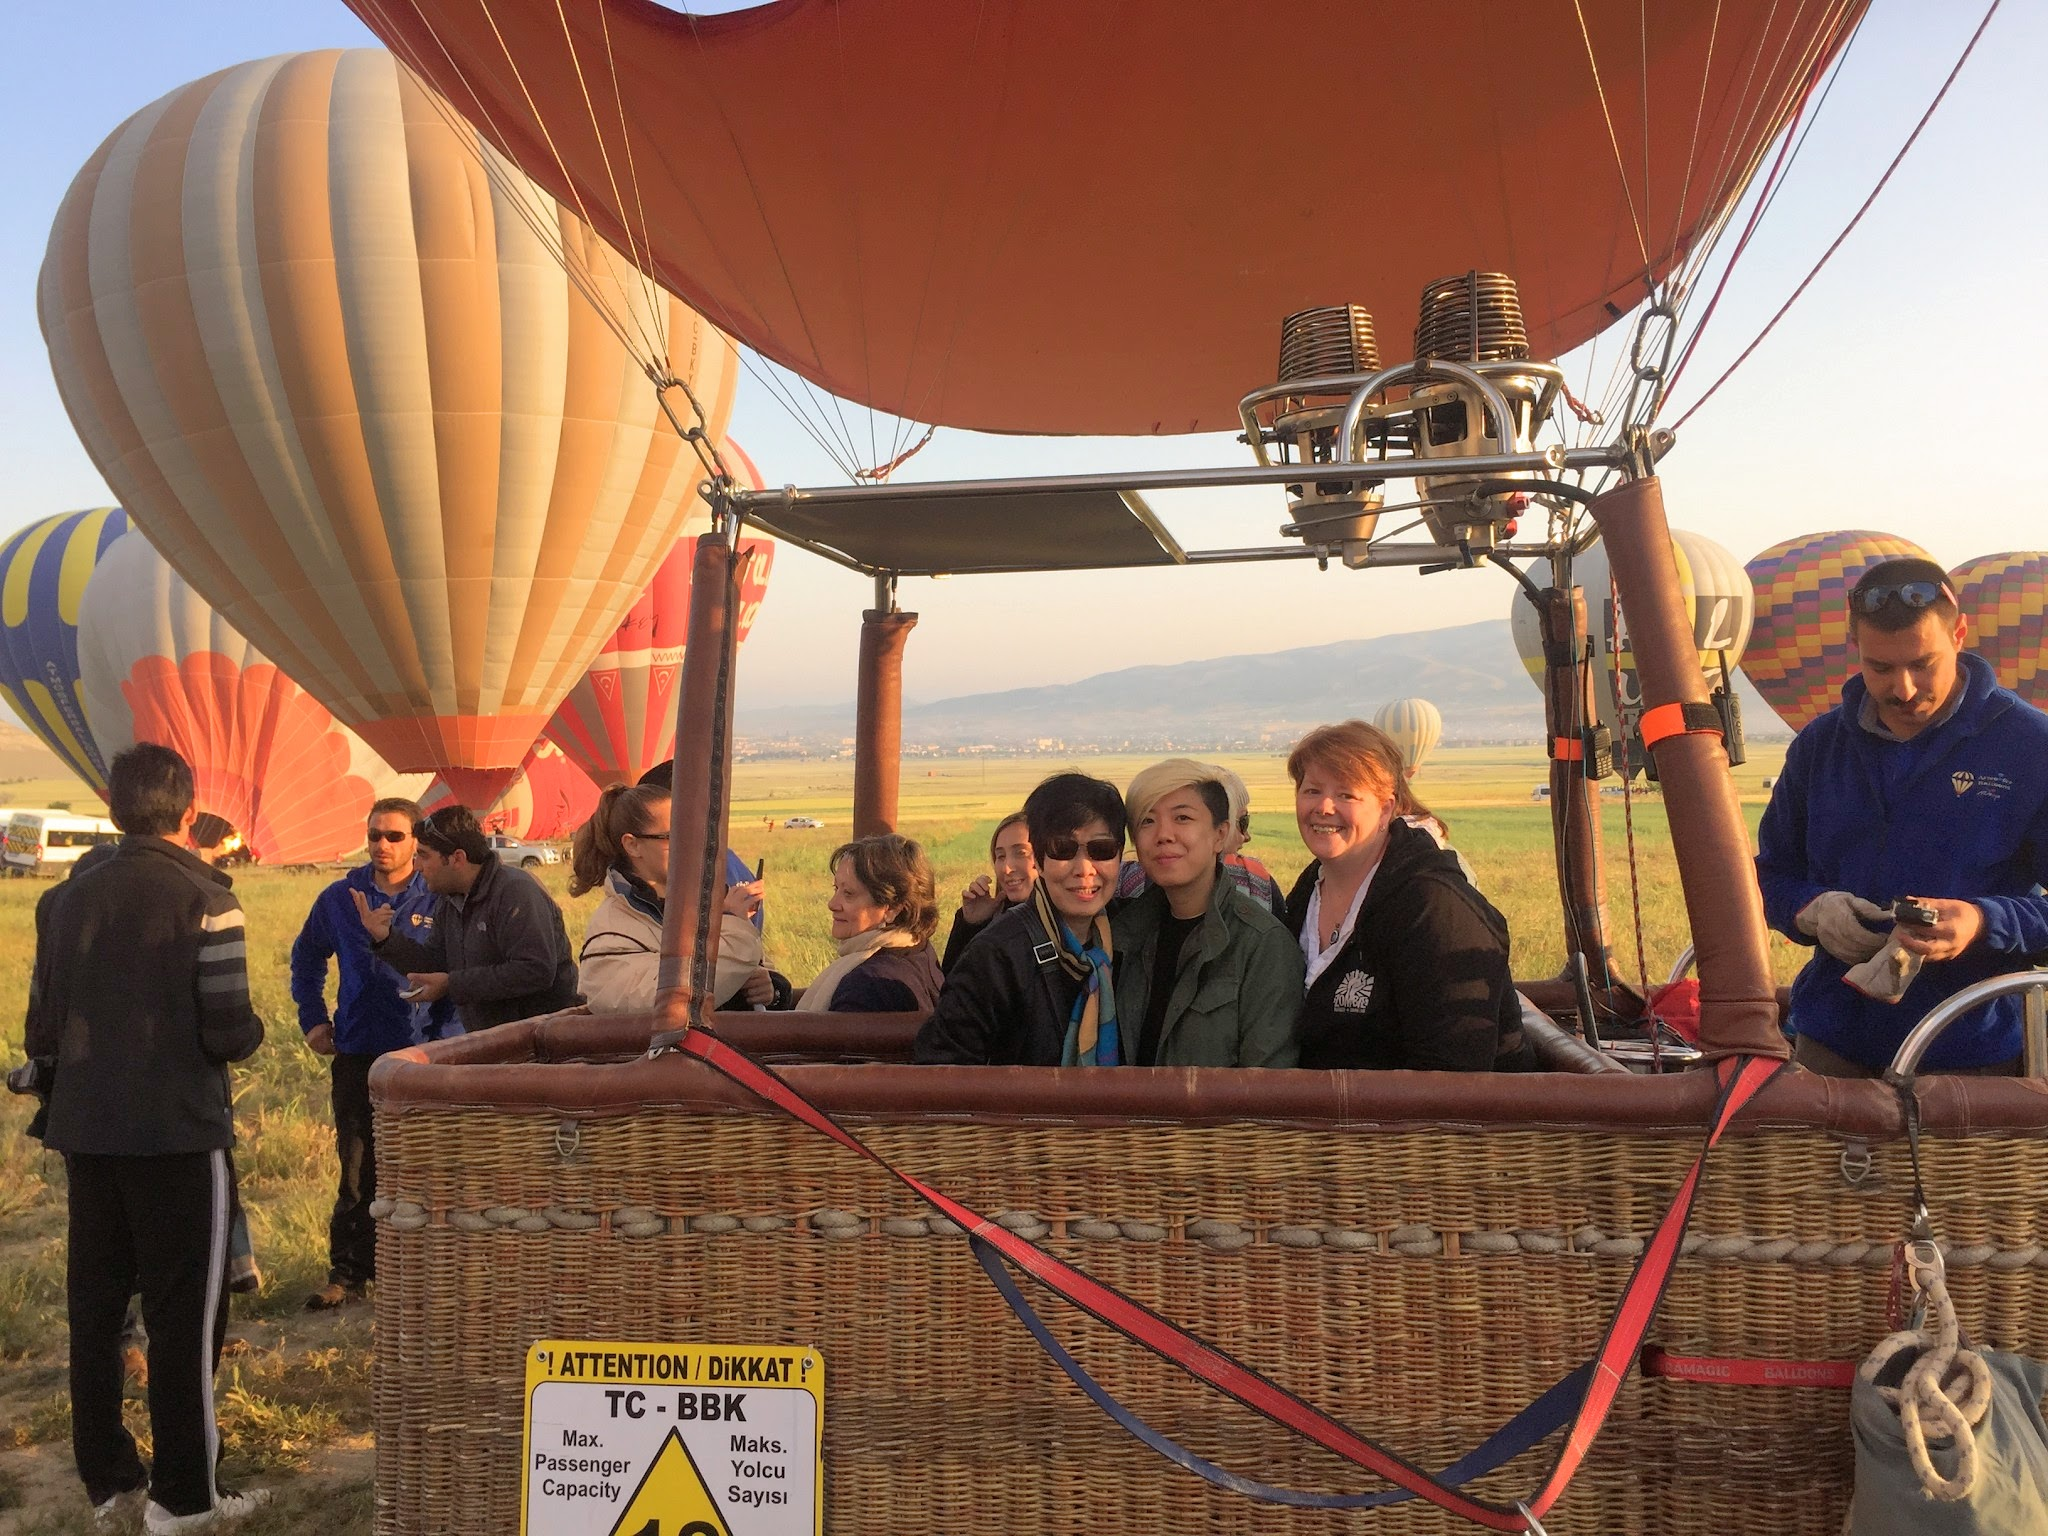 Scared of Heights Taking Hot Air Balloon Flights (Video)